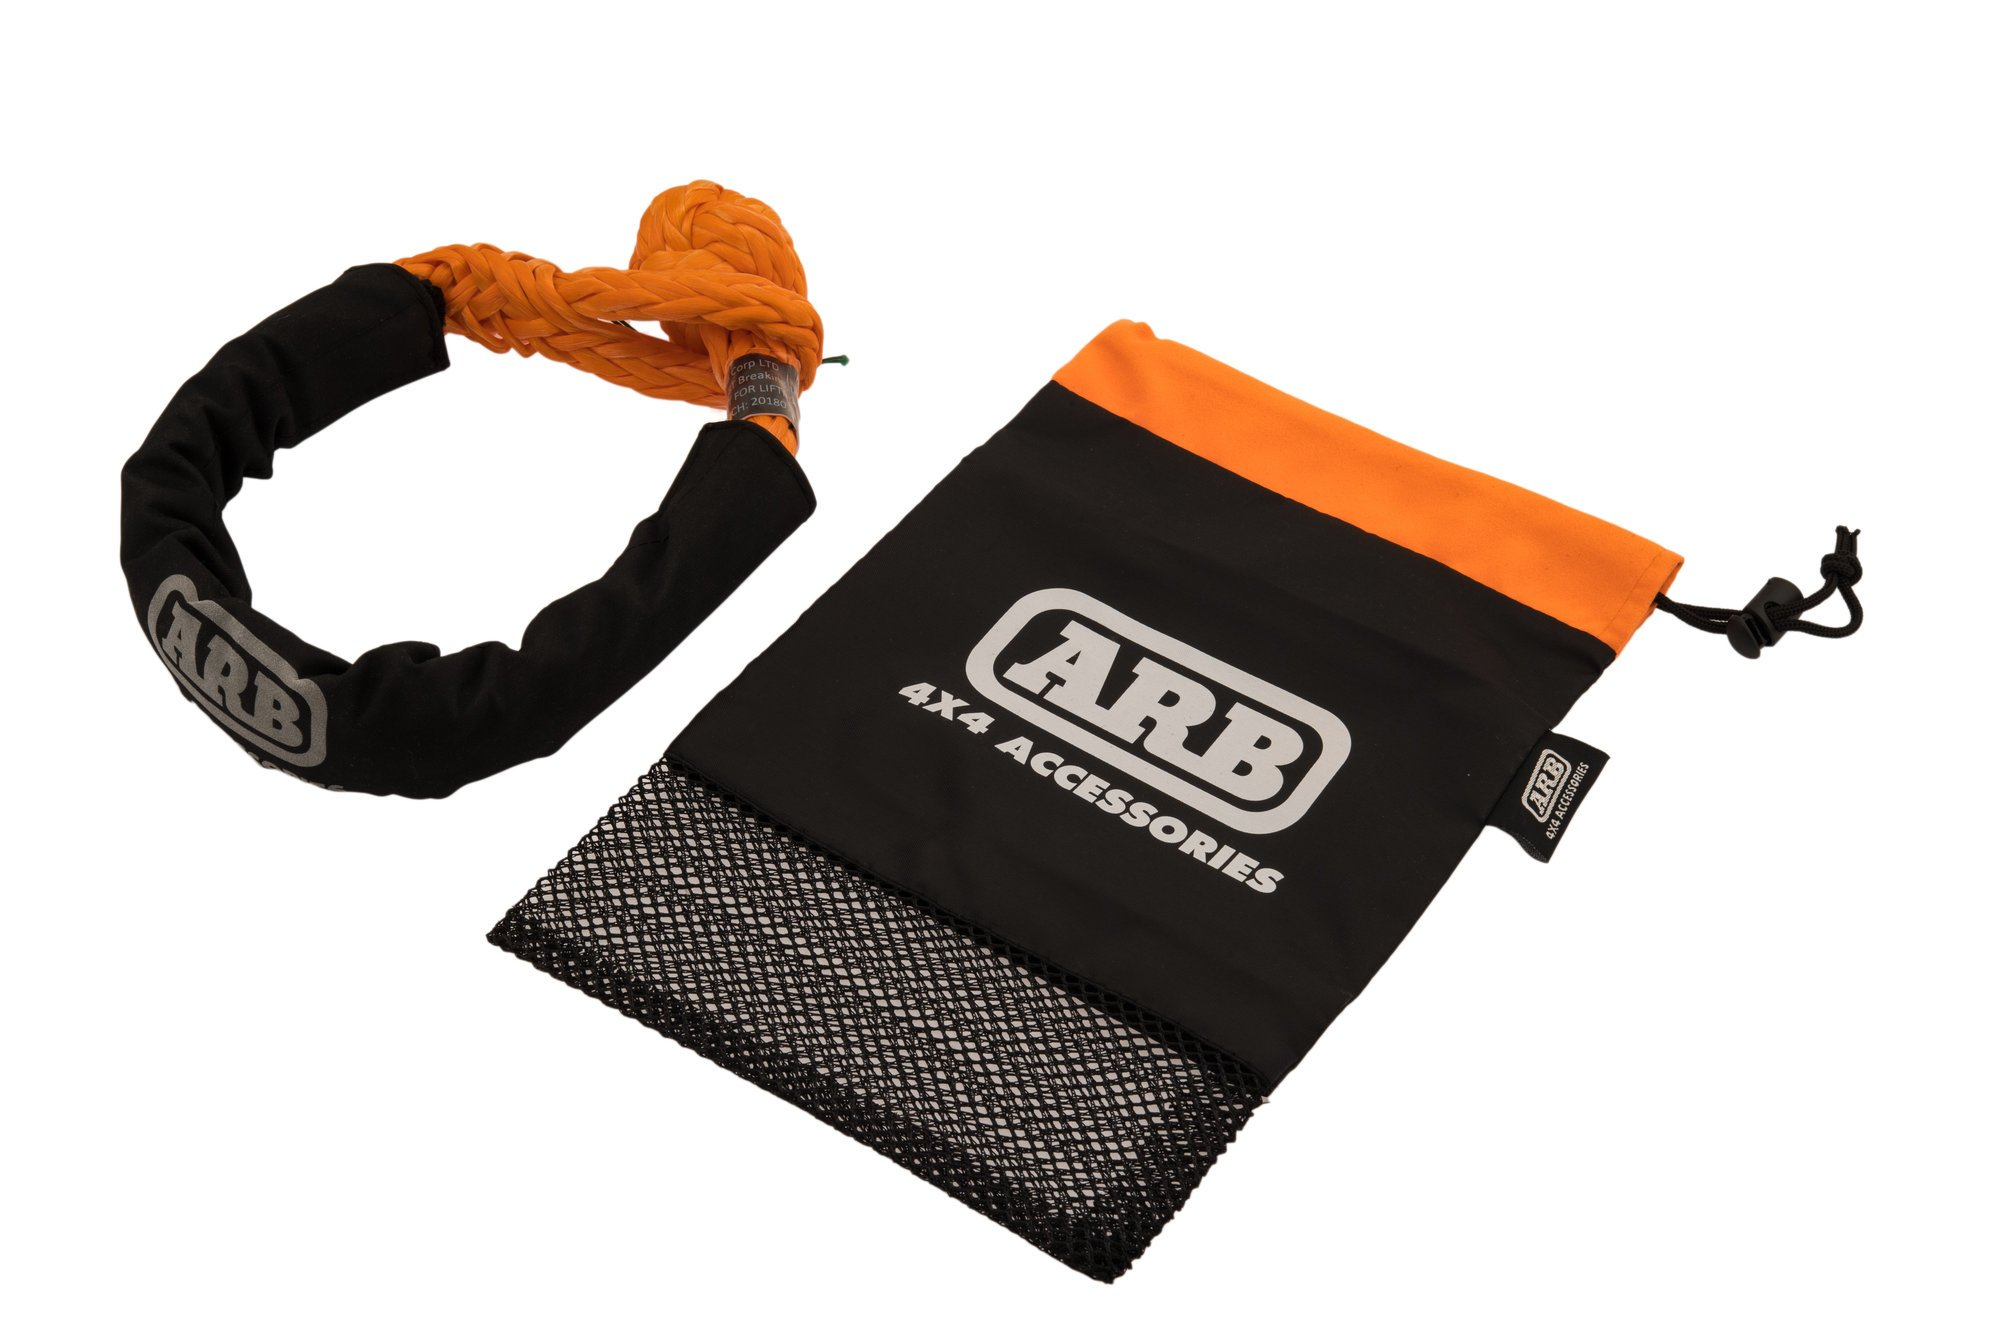 ARB Soft Rope Recovery Shackle 32,000lbs with Protective Sleeve and Gift Bag ARB2017 by ARB